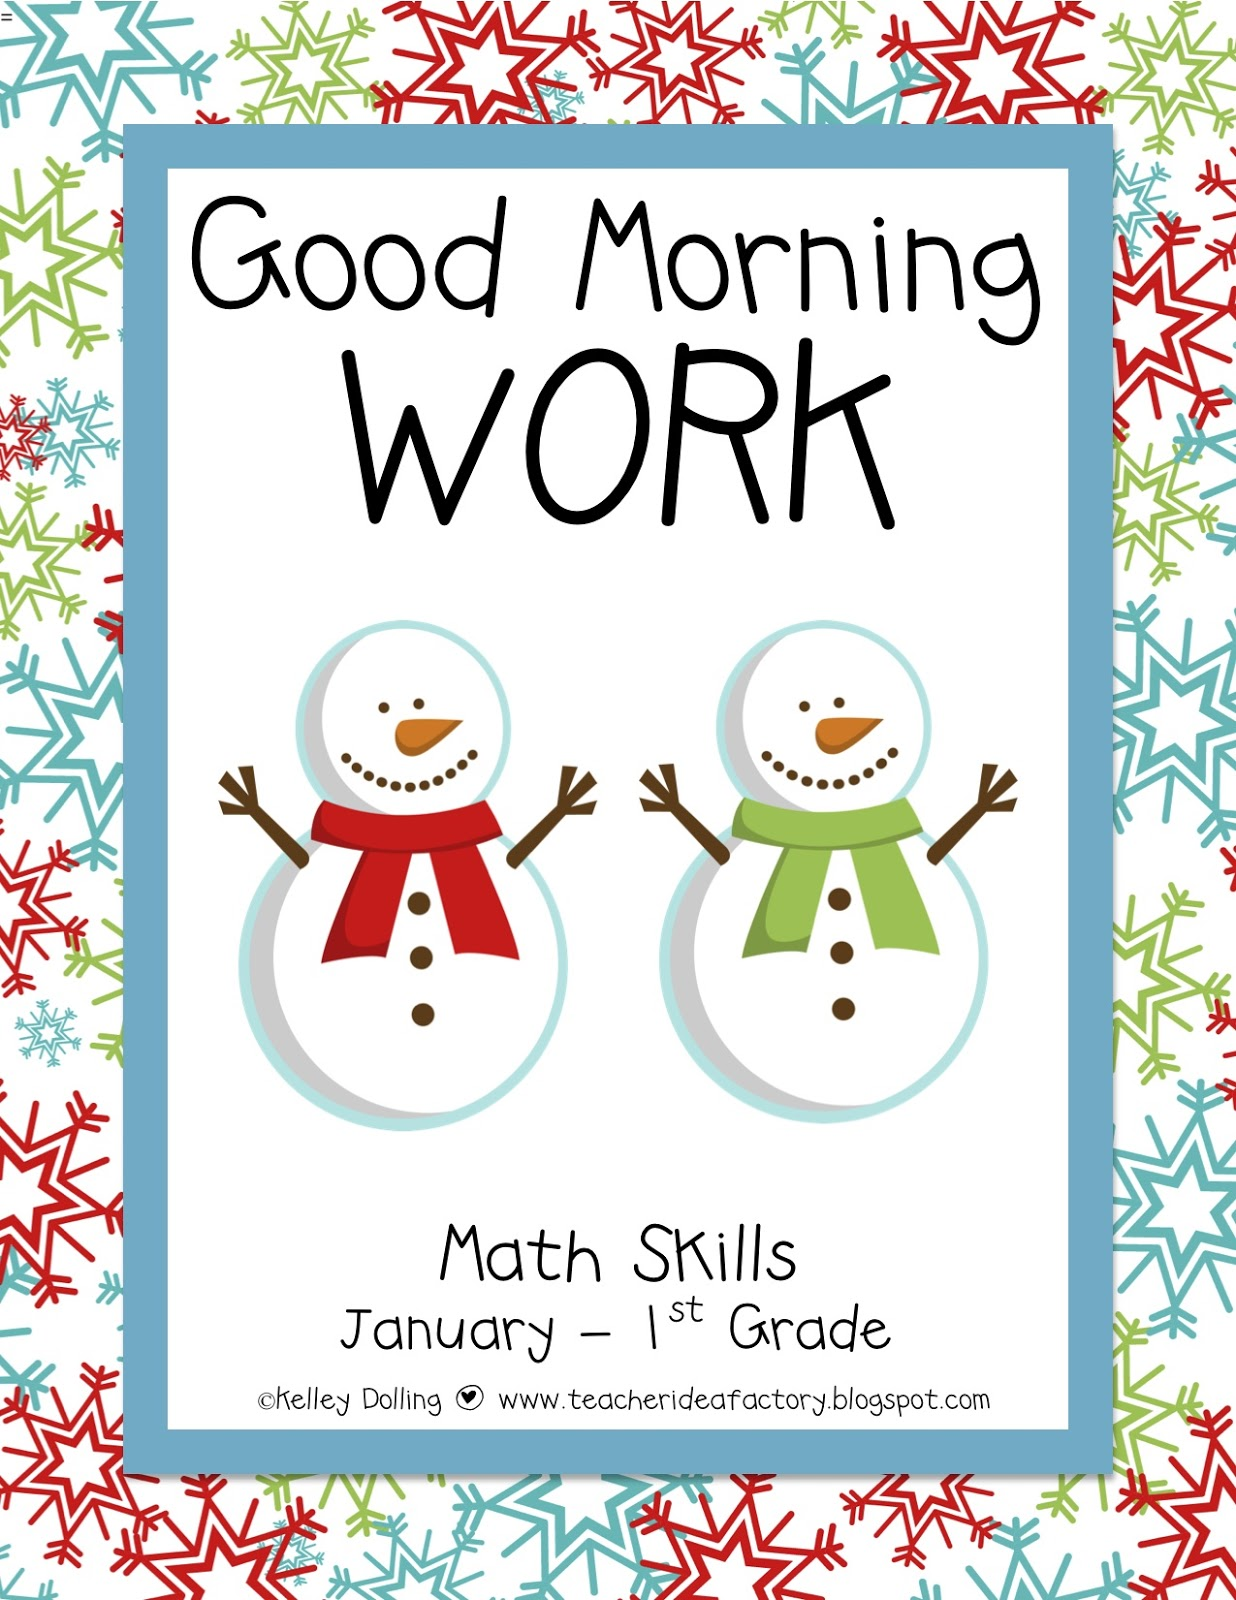 Good Morning Teacher Japanese : Teacher idea factory good morning work january